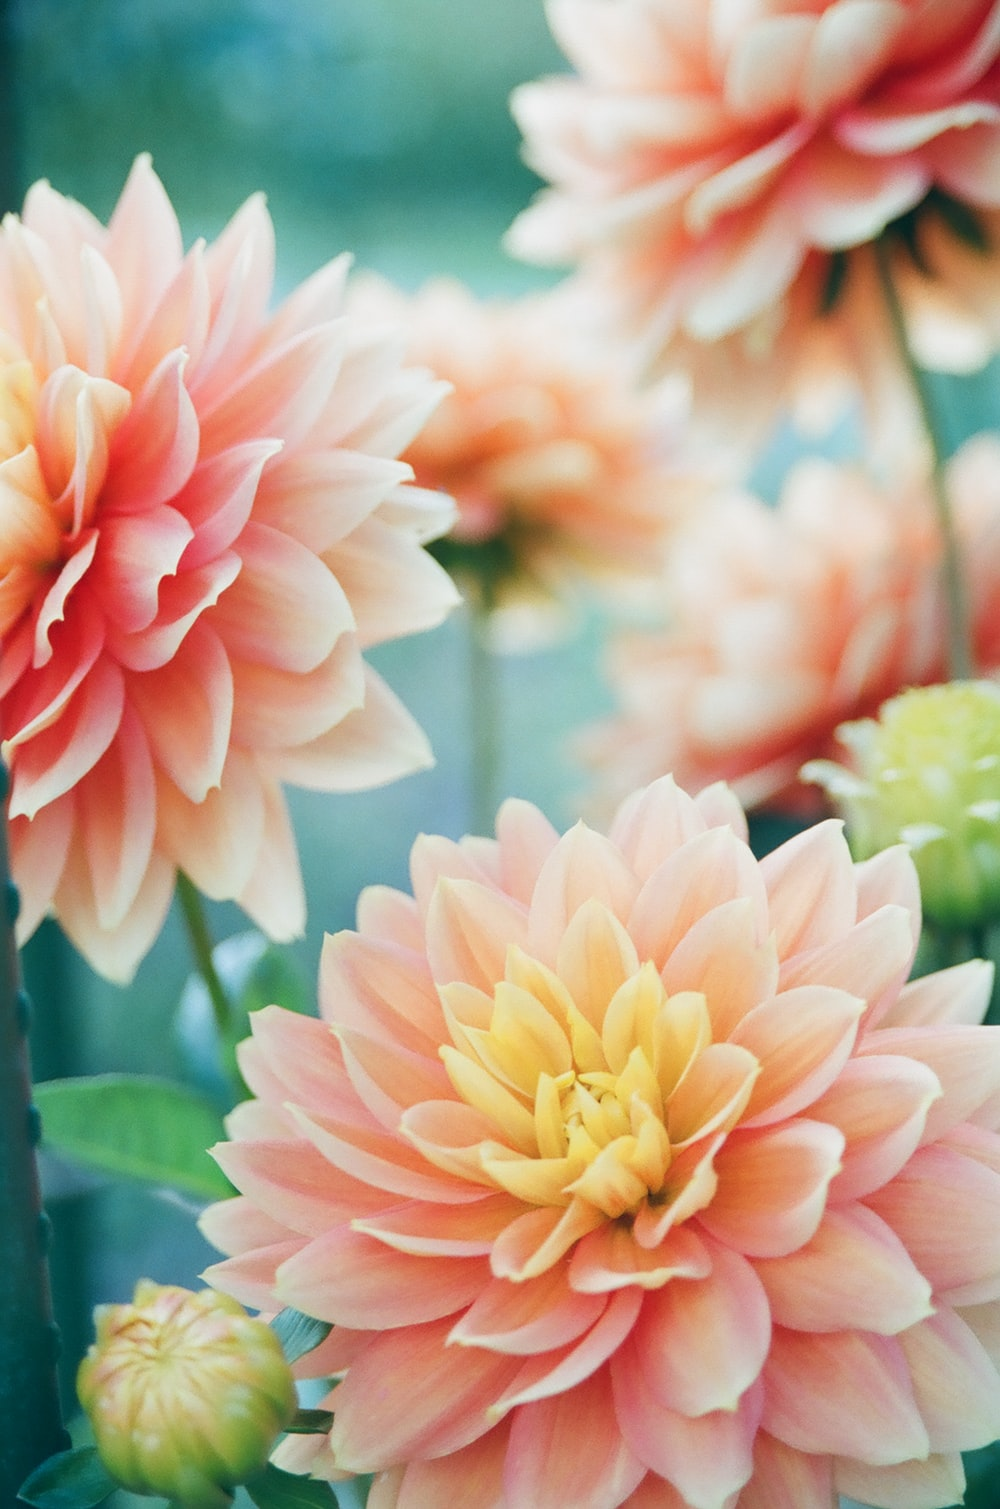 Flower Dahlia Plant And Blossom Hd Photo By Mio Ito